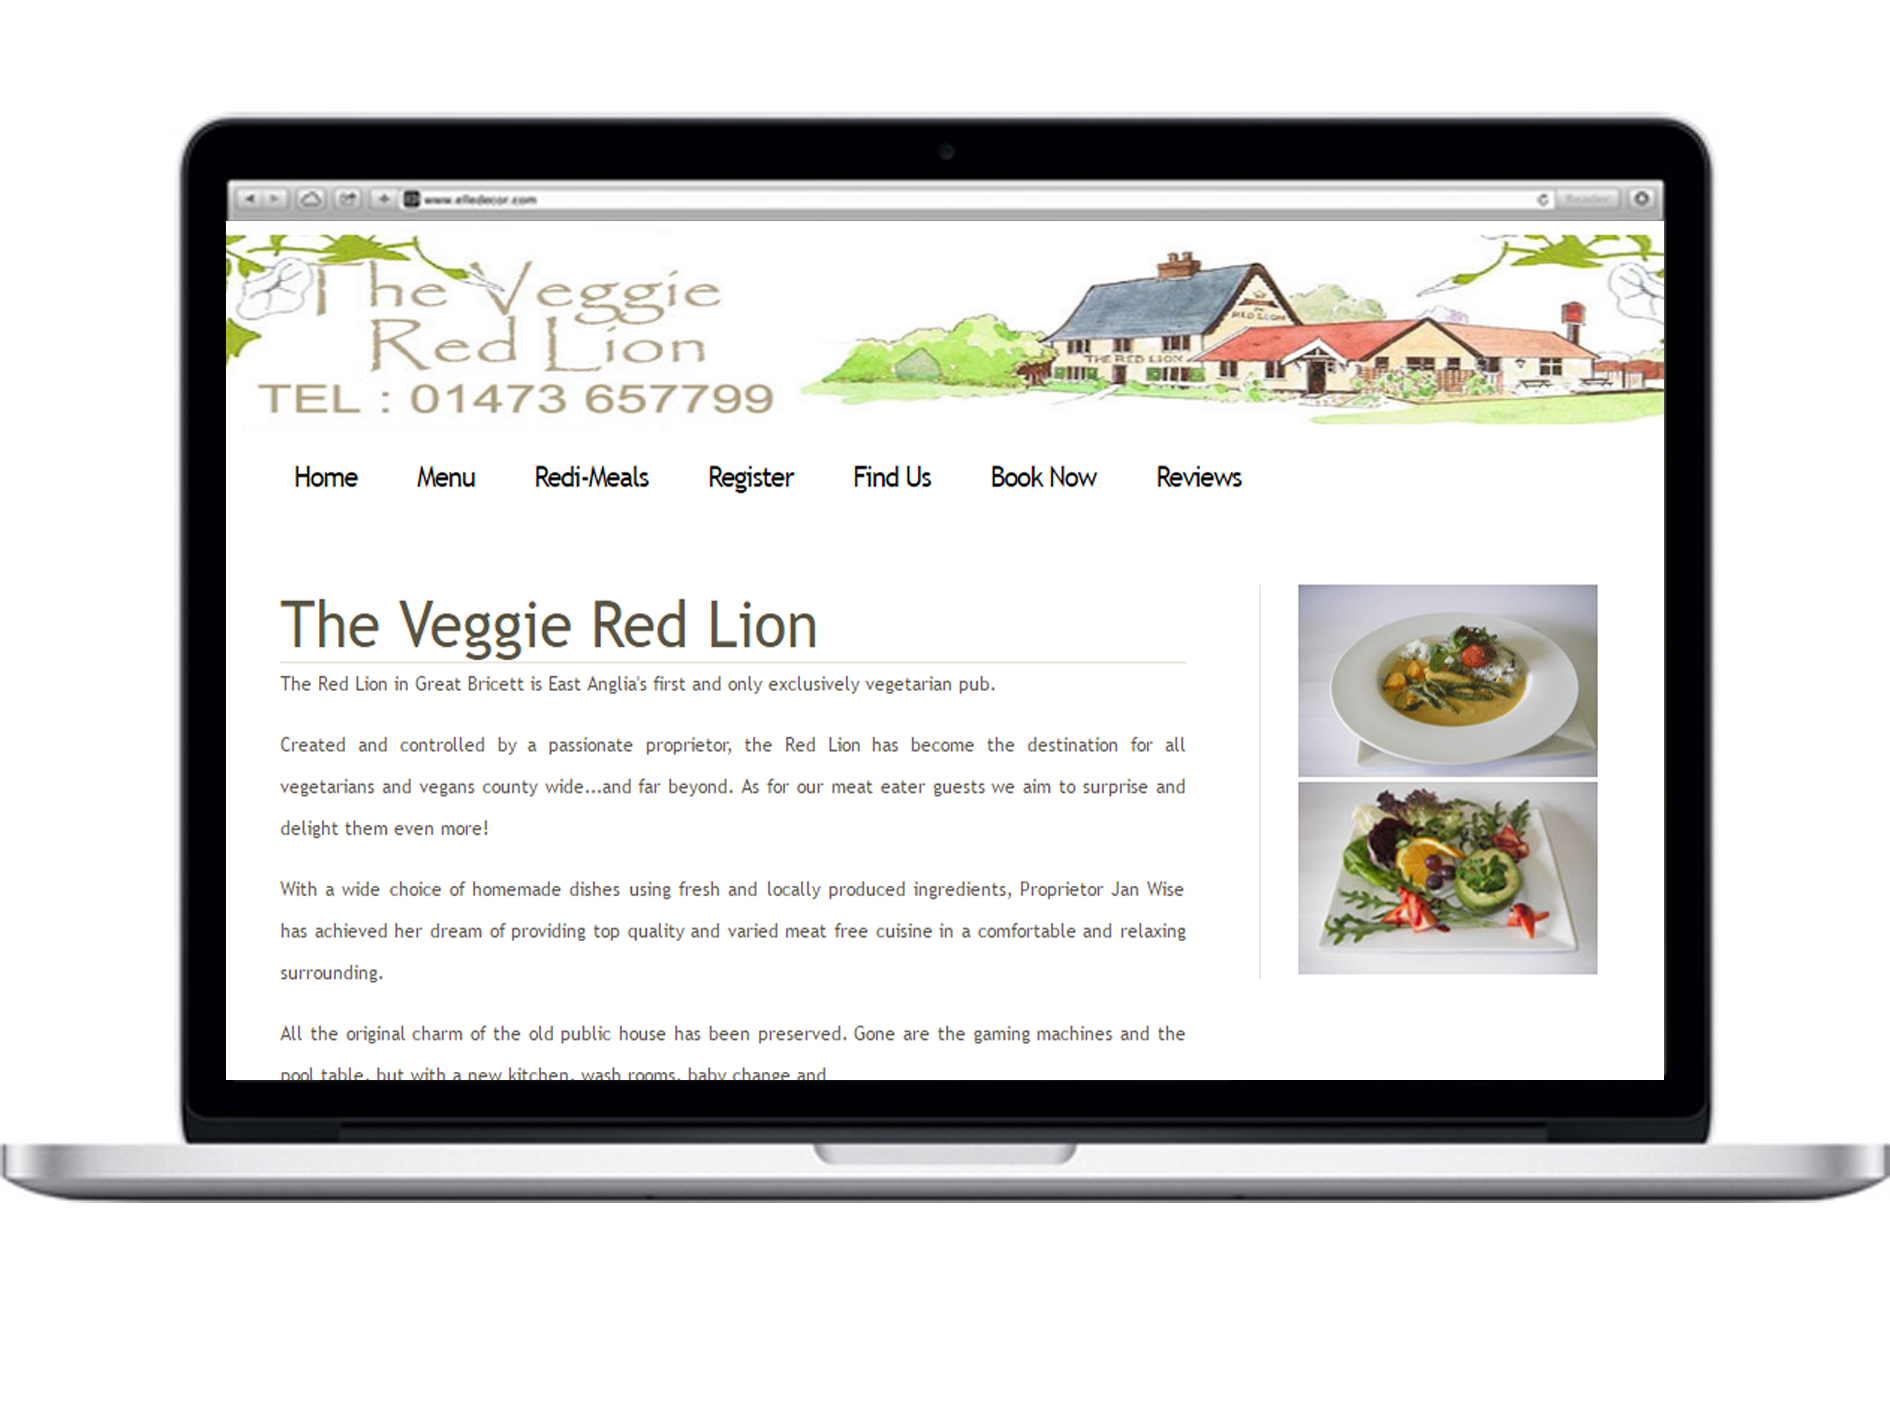 The Veggie Red Lion. 10 minute drive